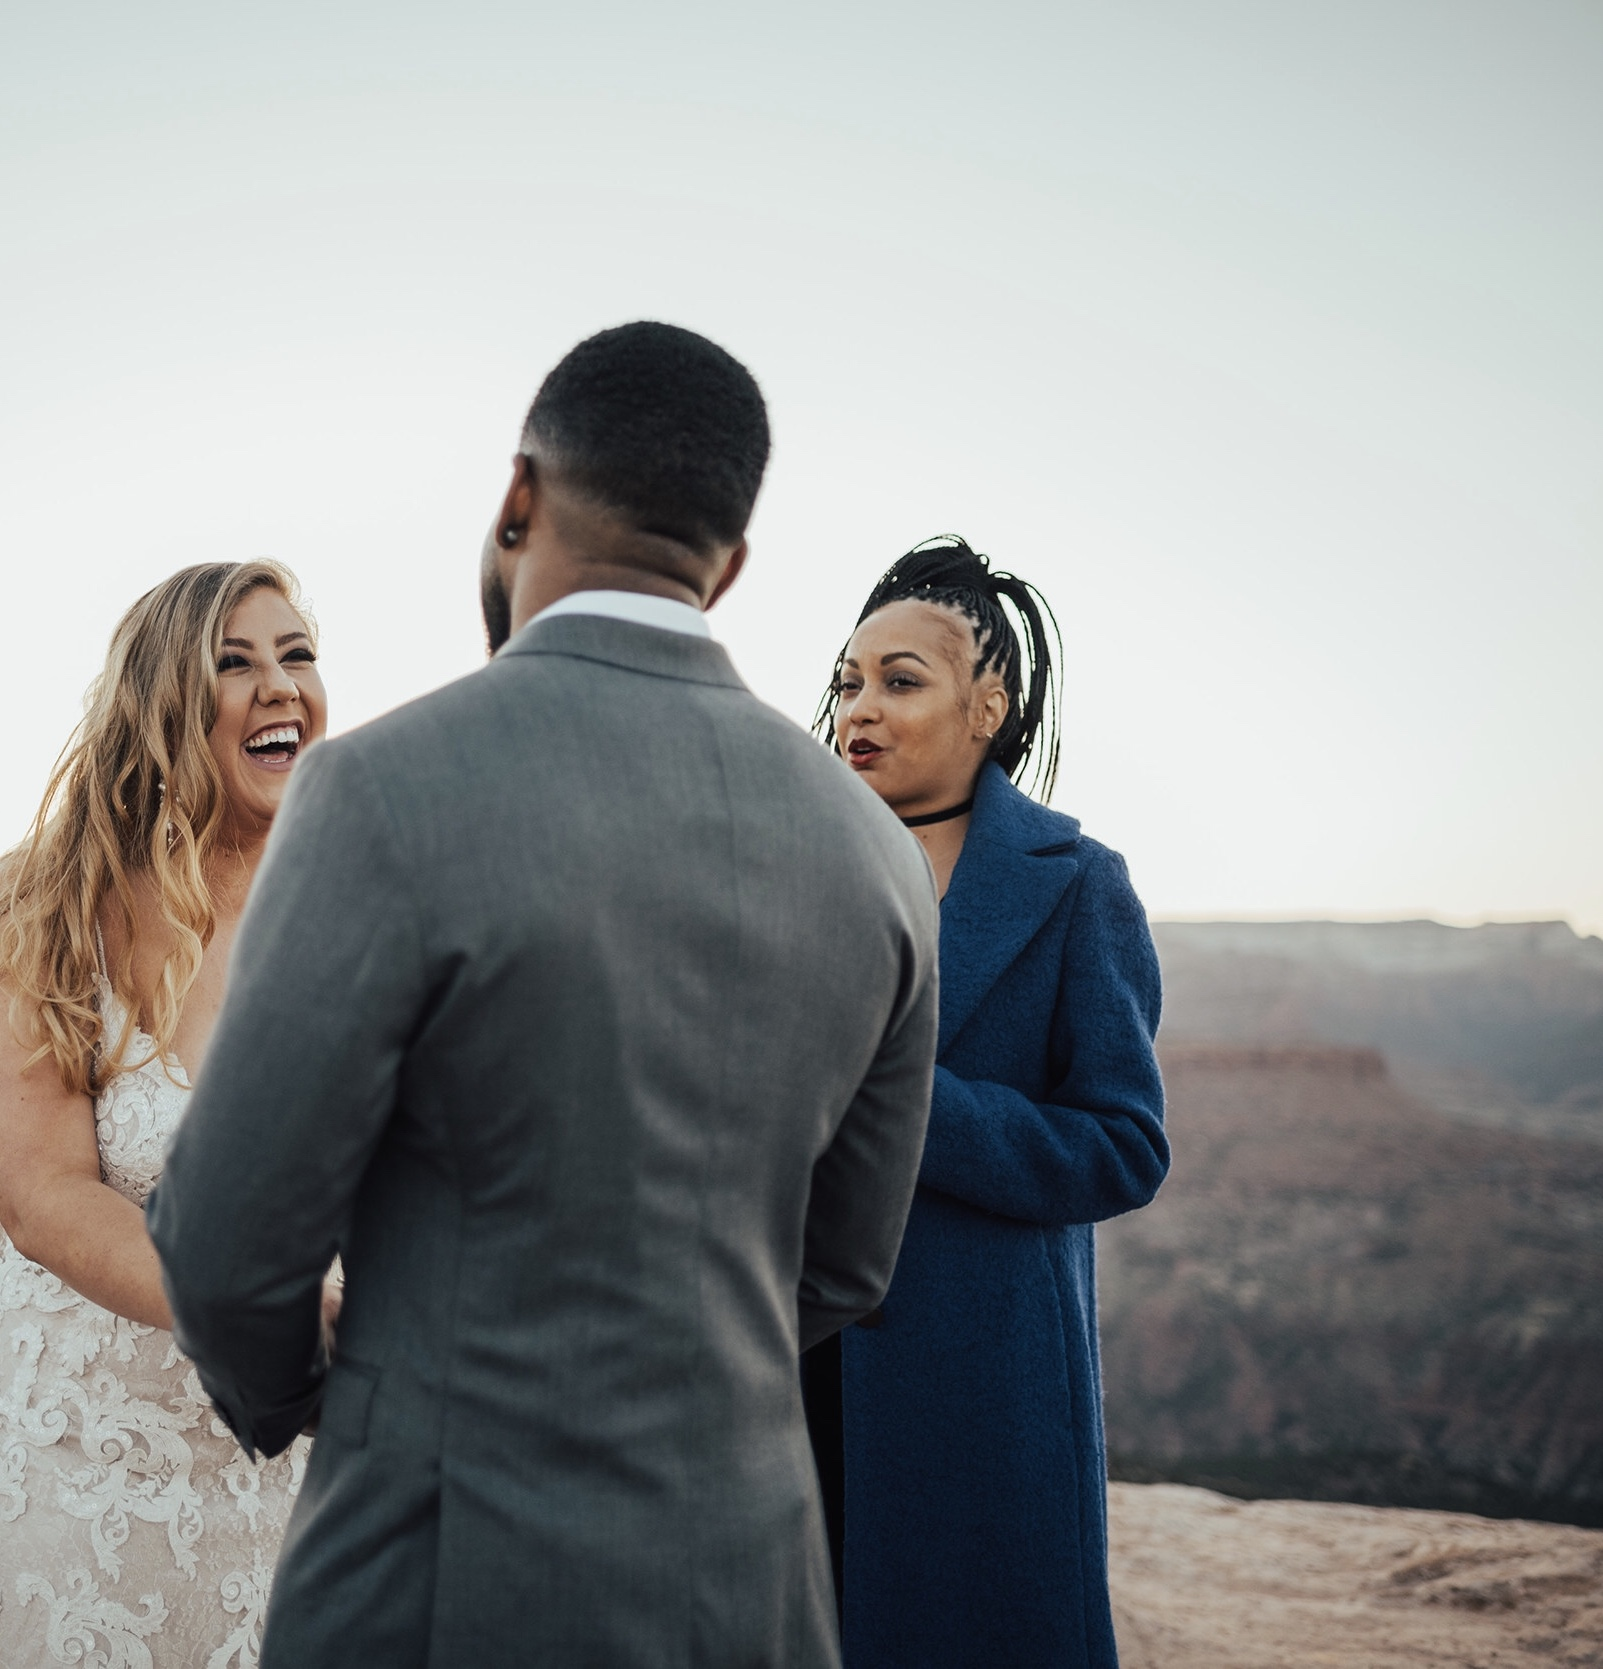 savannah-bridal-shop-ivory-and-beau-maggie-sottero-bride-tuscany-lynette-zion-national-park-wedding-utah-wedding-savannah-wedding-dresses-savannah-wedding-gowns-ashley-smith-photography-vanilla-and-the-bean-8.jpg